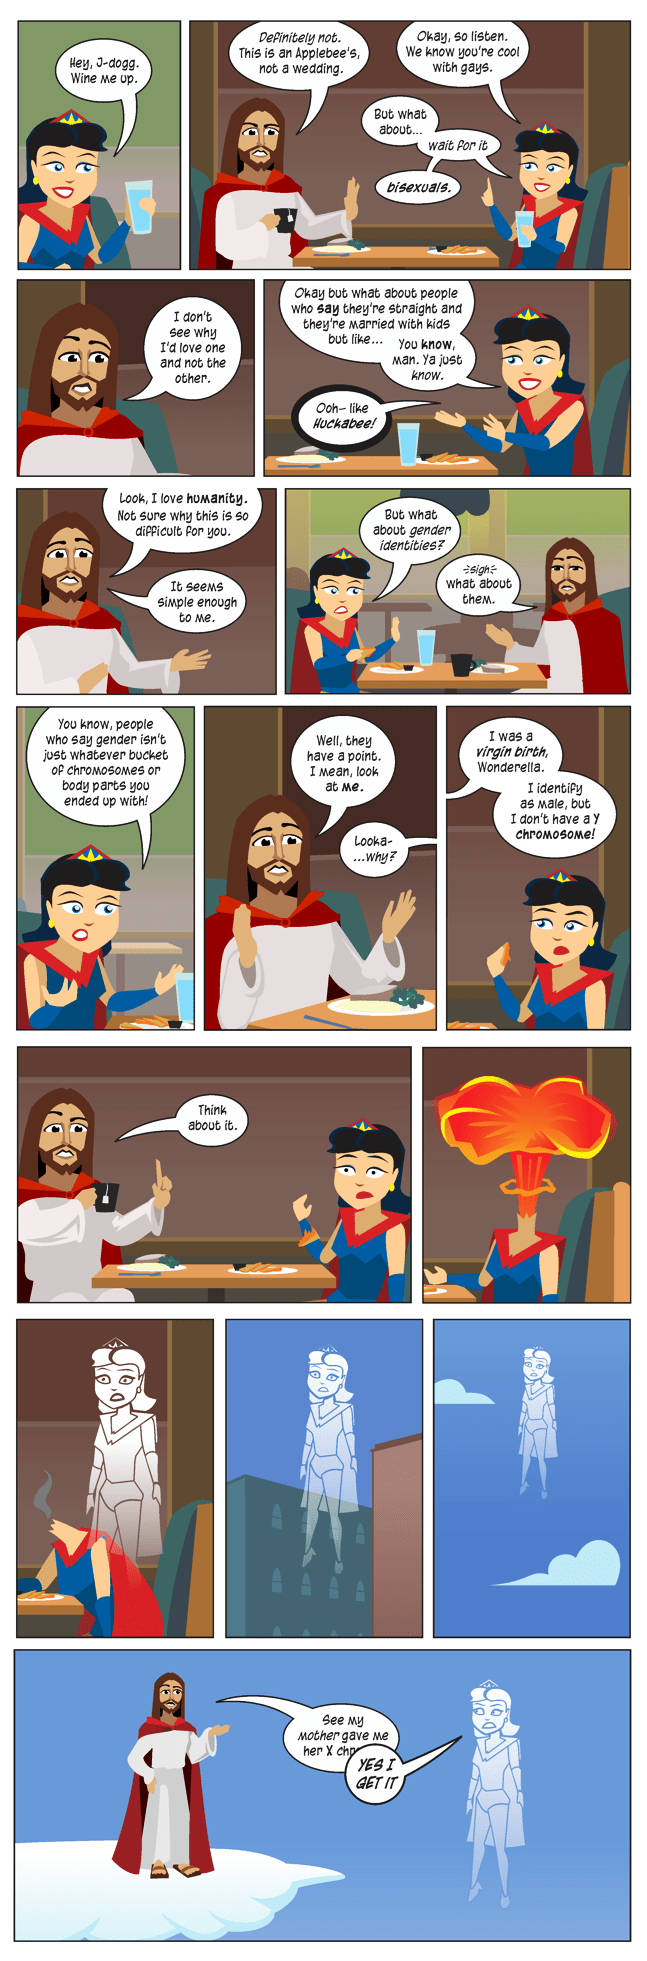 jesus religion hippies web comics - 8762580224